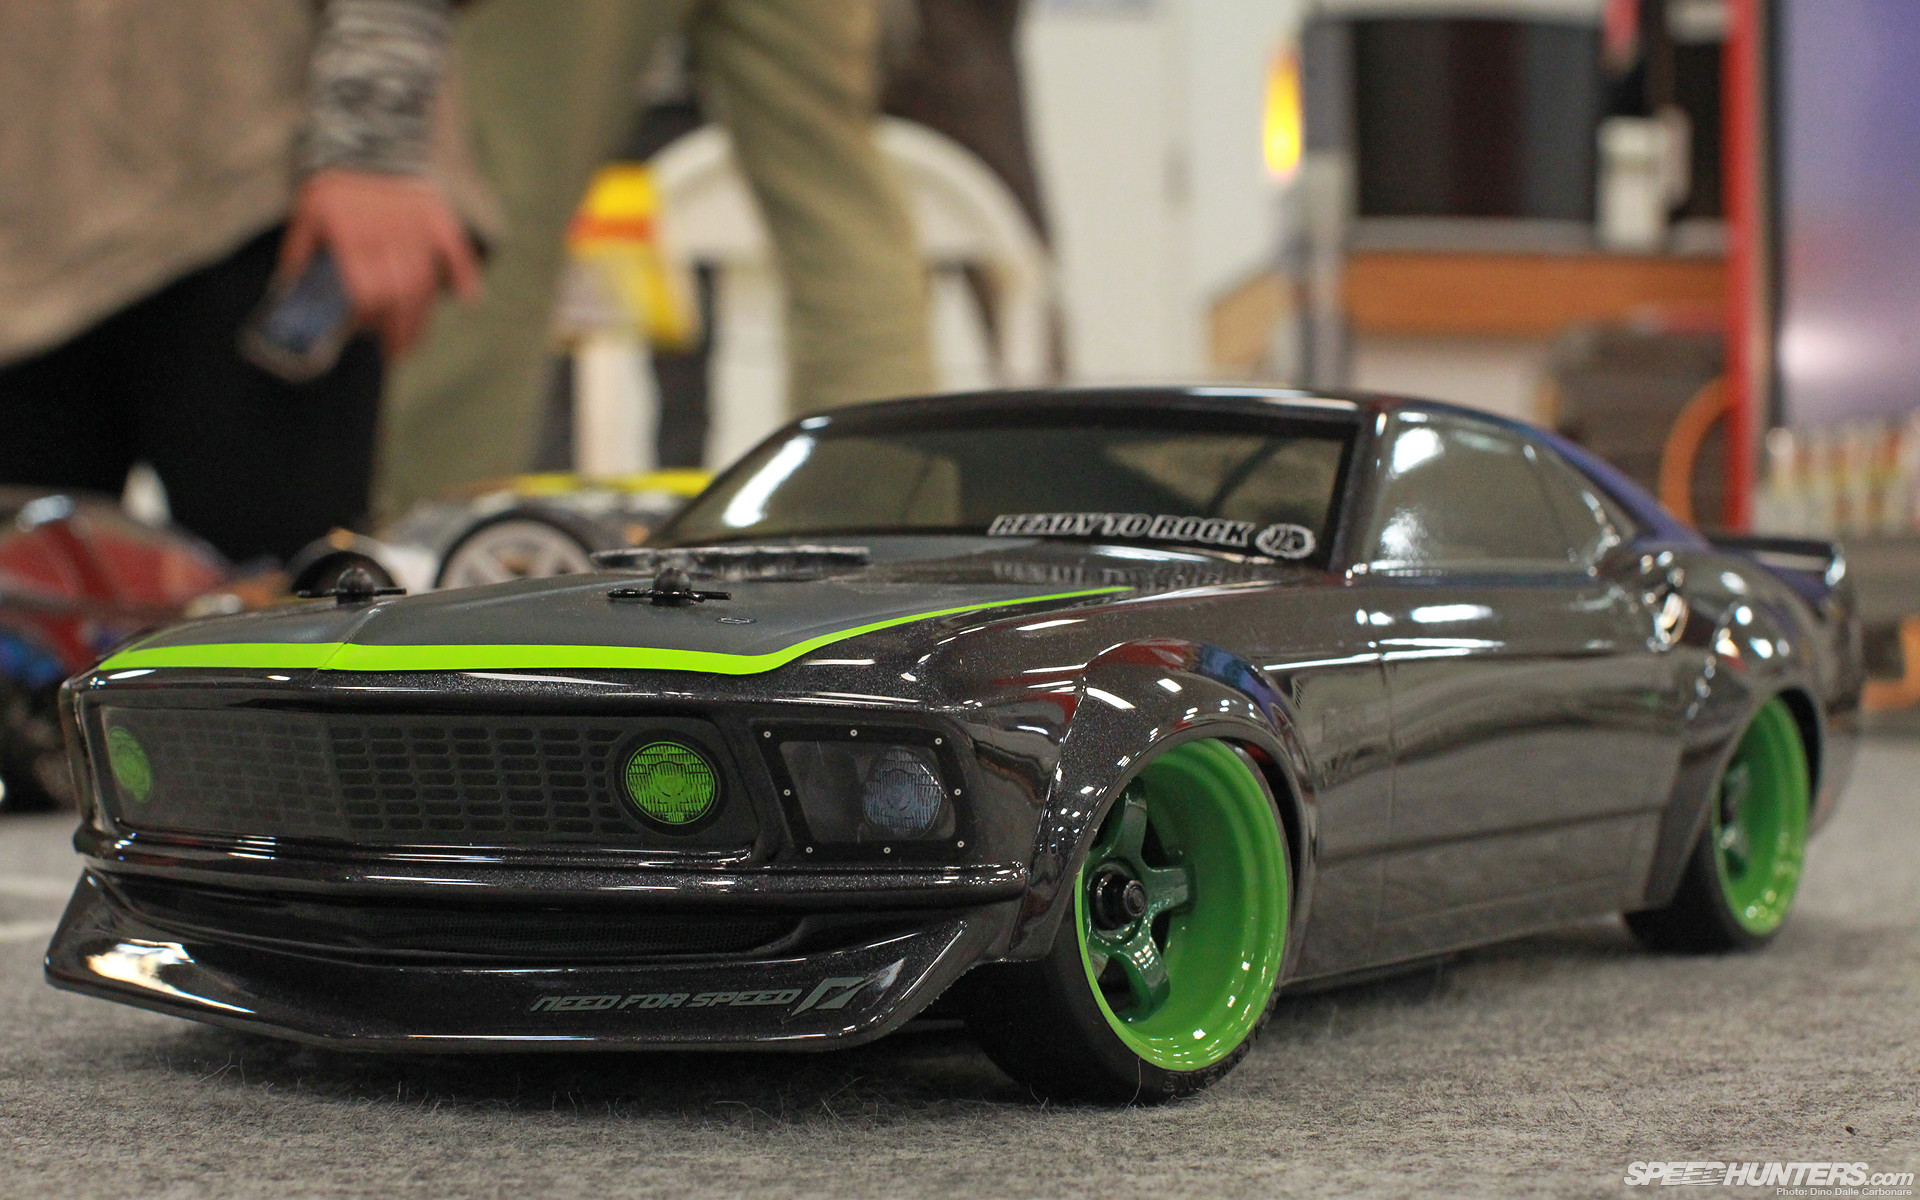 1920x1200 Ford Mustang muscle cars tuning hot rods toys wallpaper .